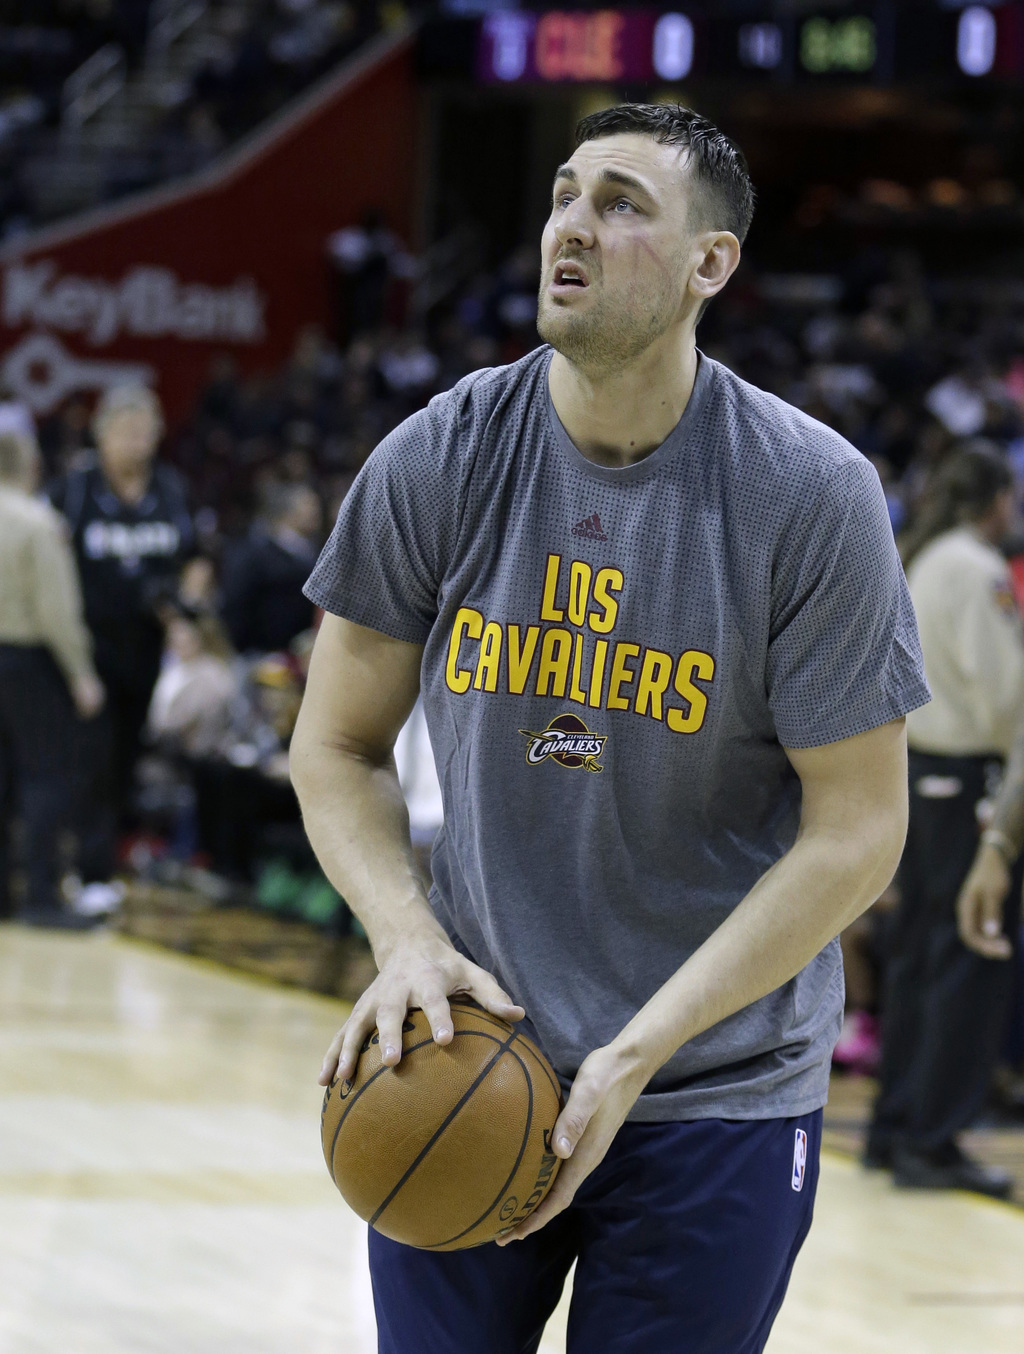 Cleveland Cavaliers' Andrew Bogut warms up before an NBA basketball game between the Miami Heat and the Cleveland Cavaliers, Monday, Ma...